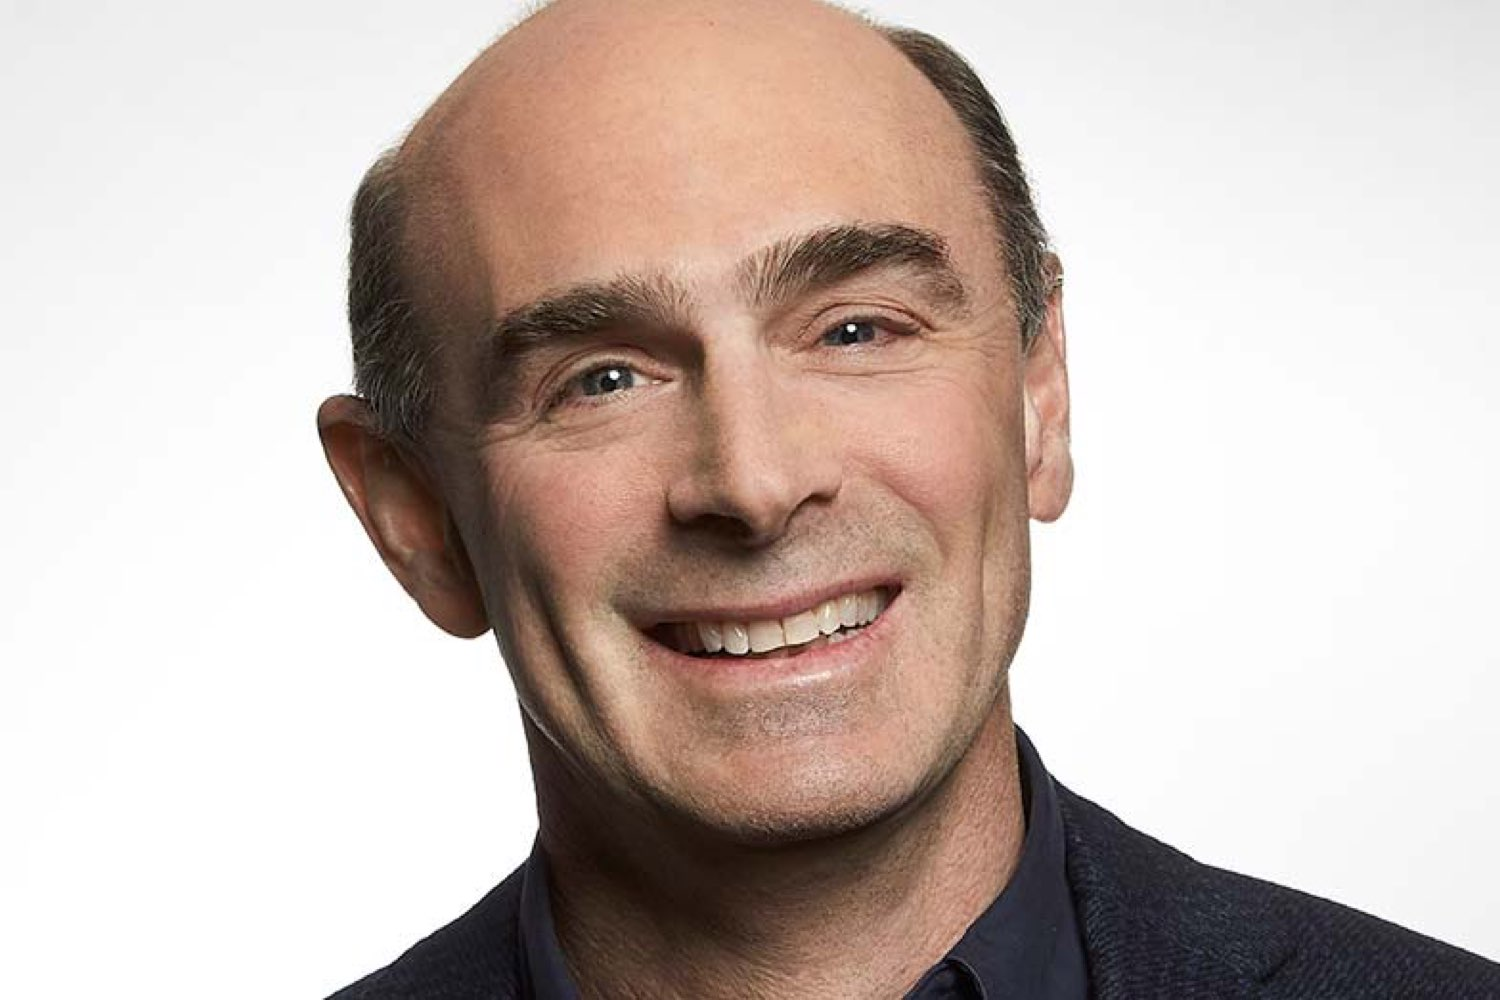 Image for article Kleiner Perkins veteran Ted Schlein tells why firm's reboot was needed